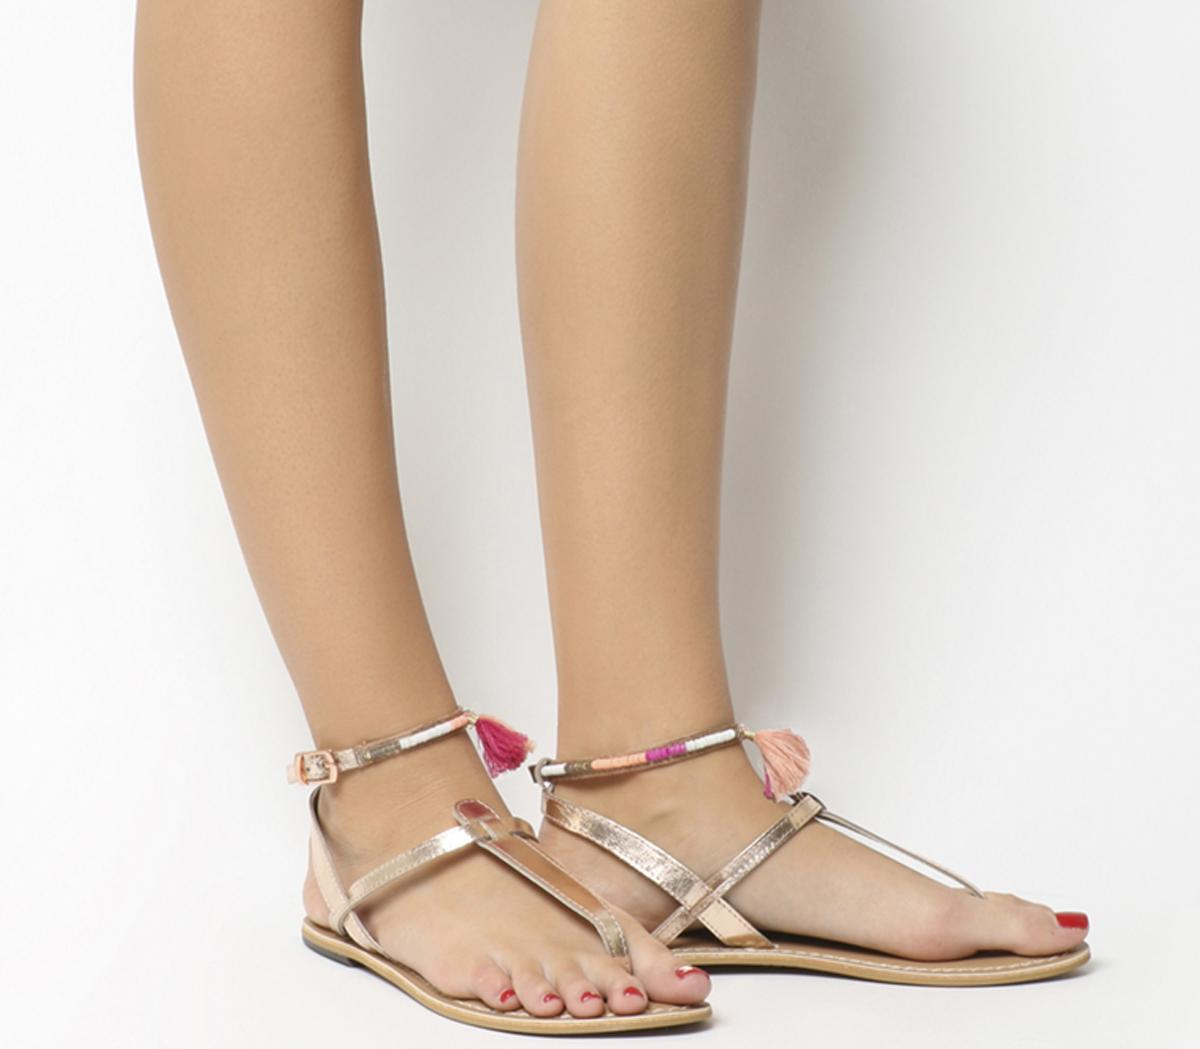 Salsa Tassel Ankle Strap Toe Post Sandals